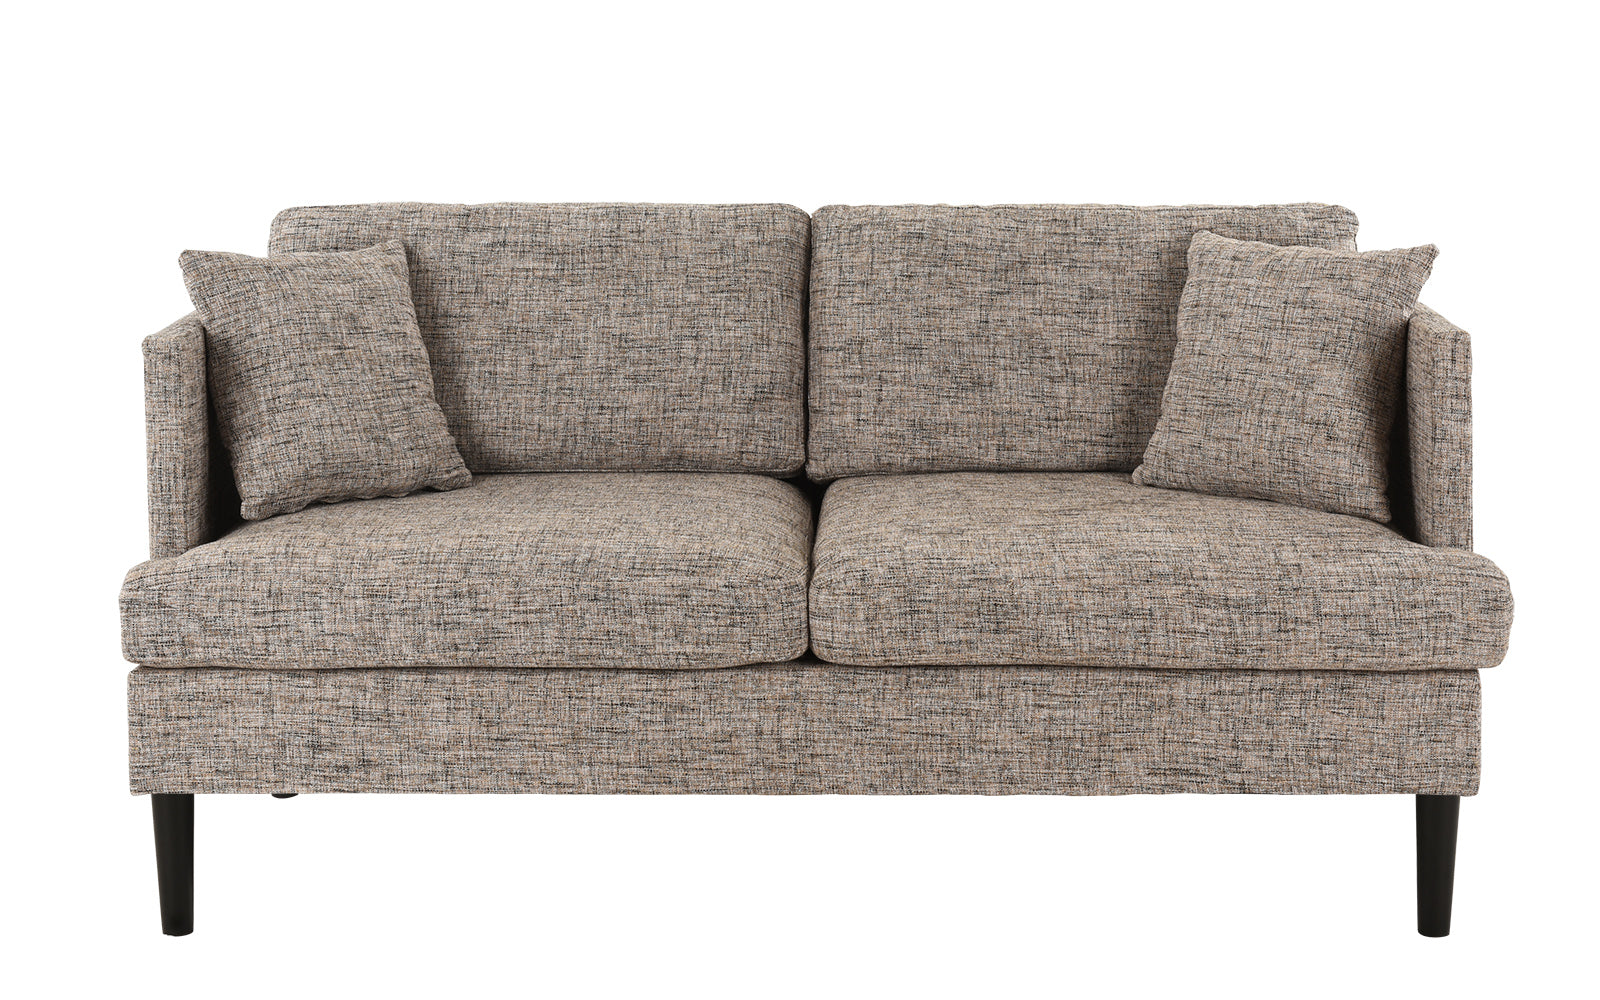 August Modern Loveseat Sofa With Wooden Legs